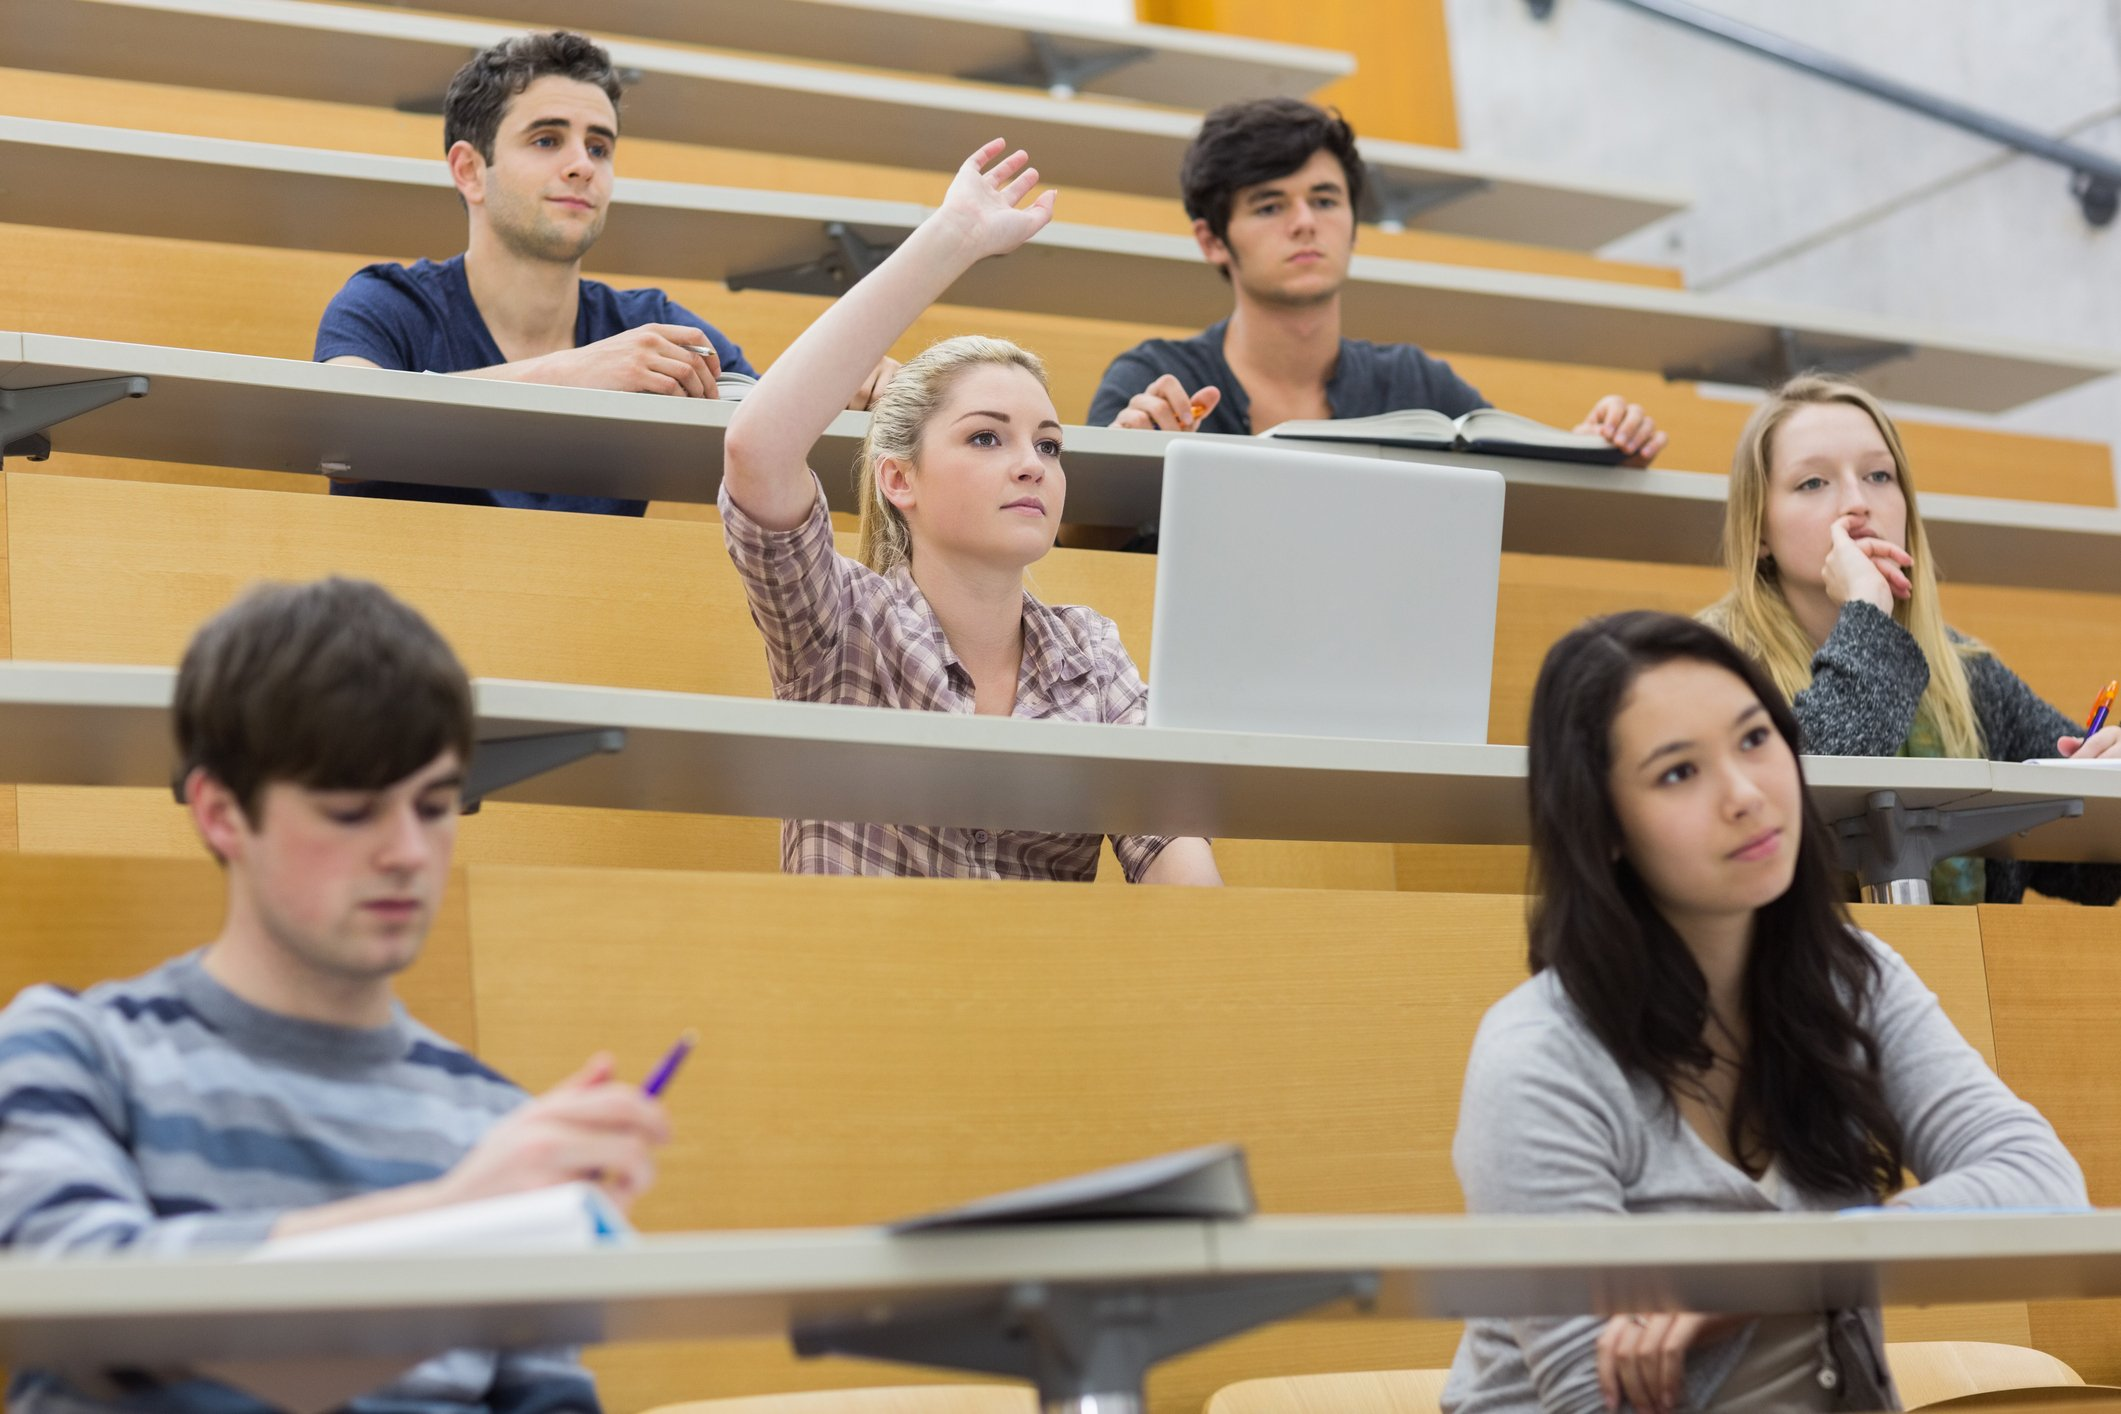 A group of students sit in a lecture theatre with a girl raising her hand to ask a question